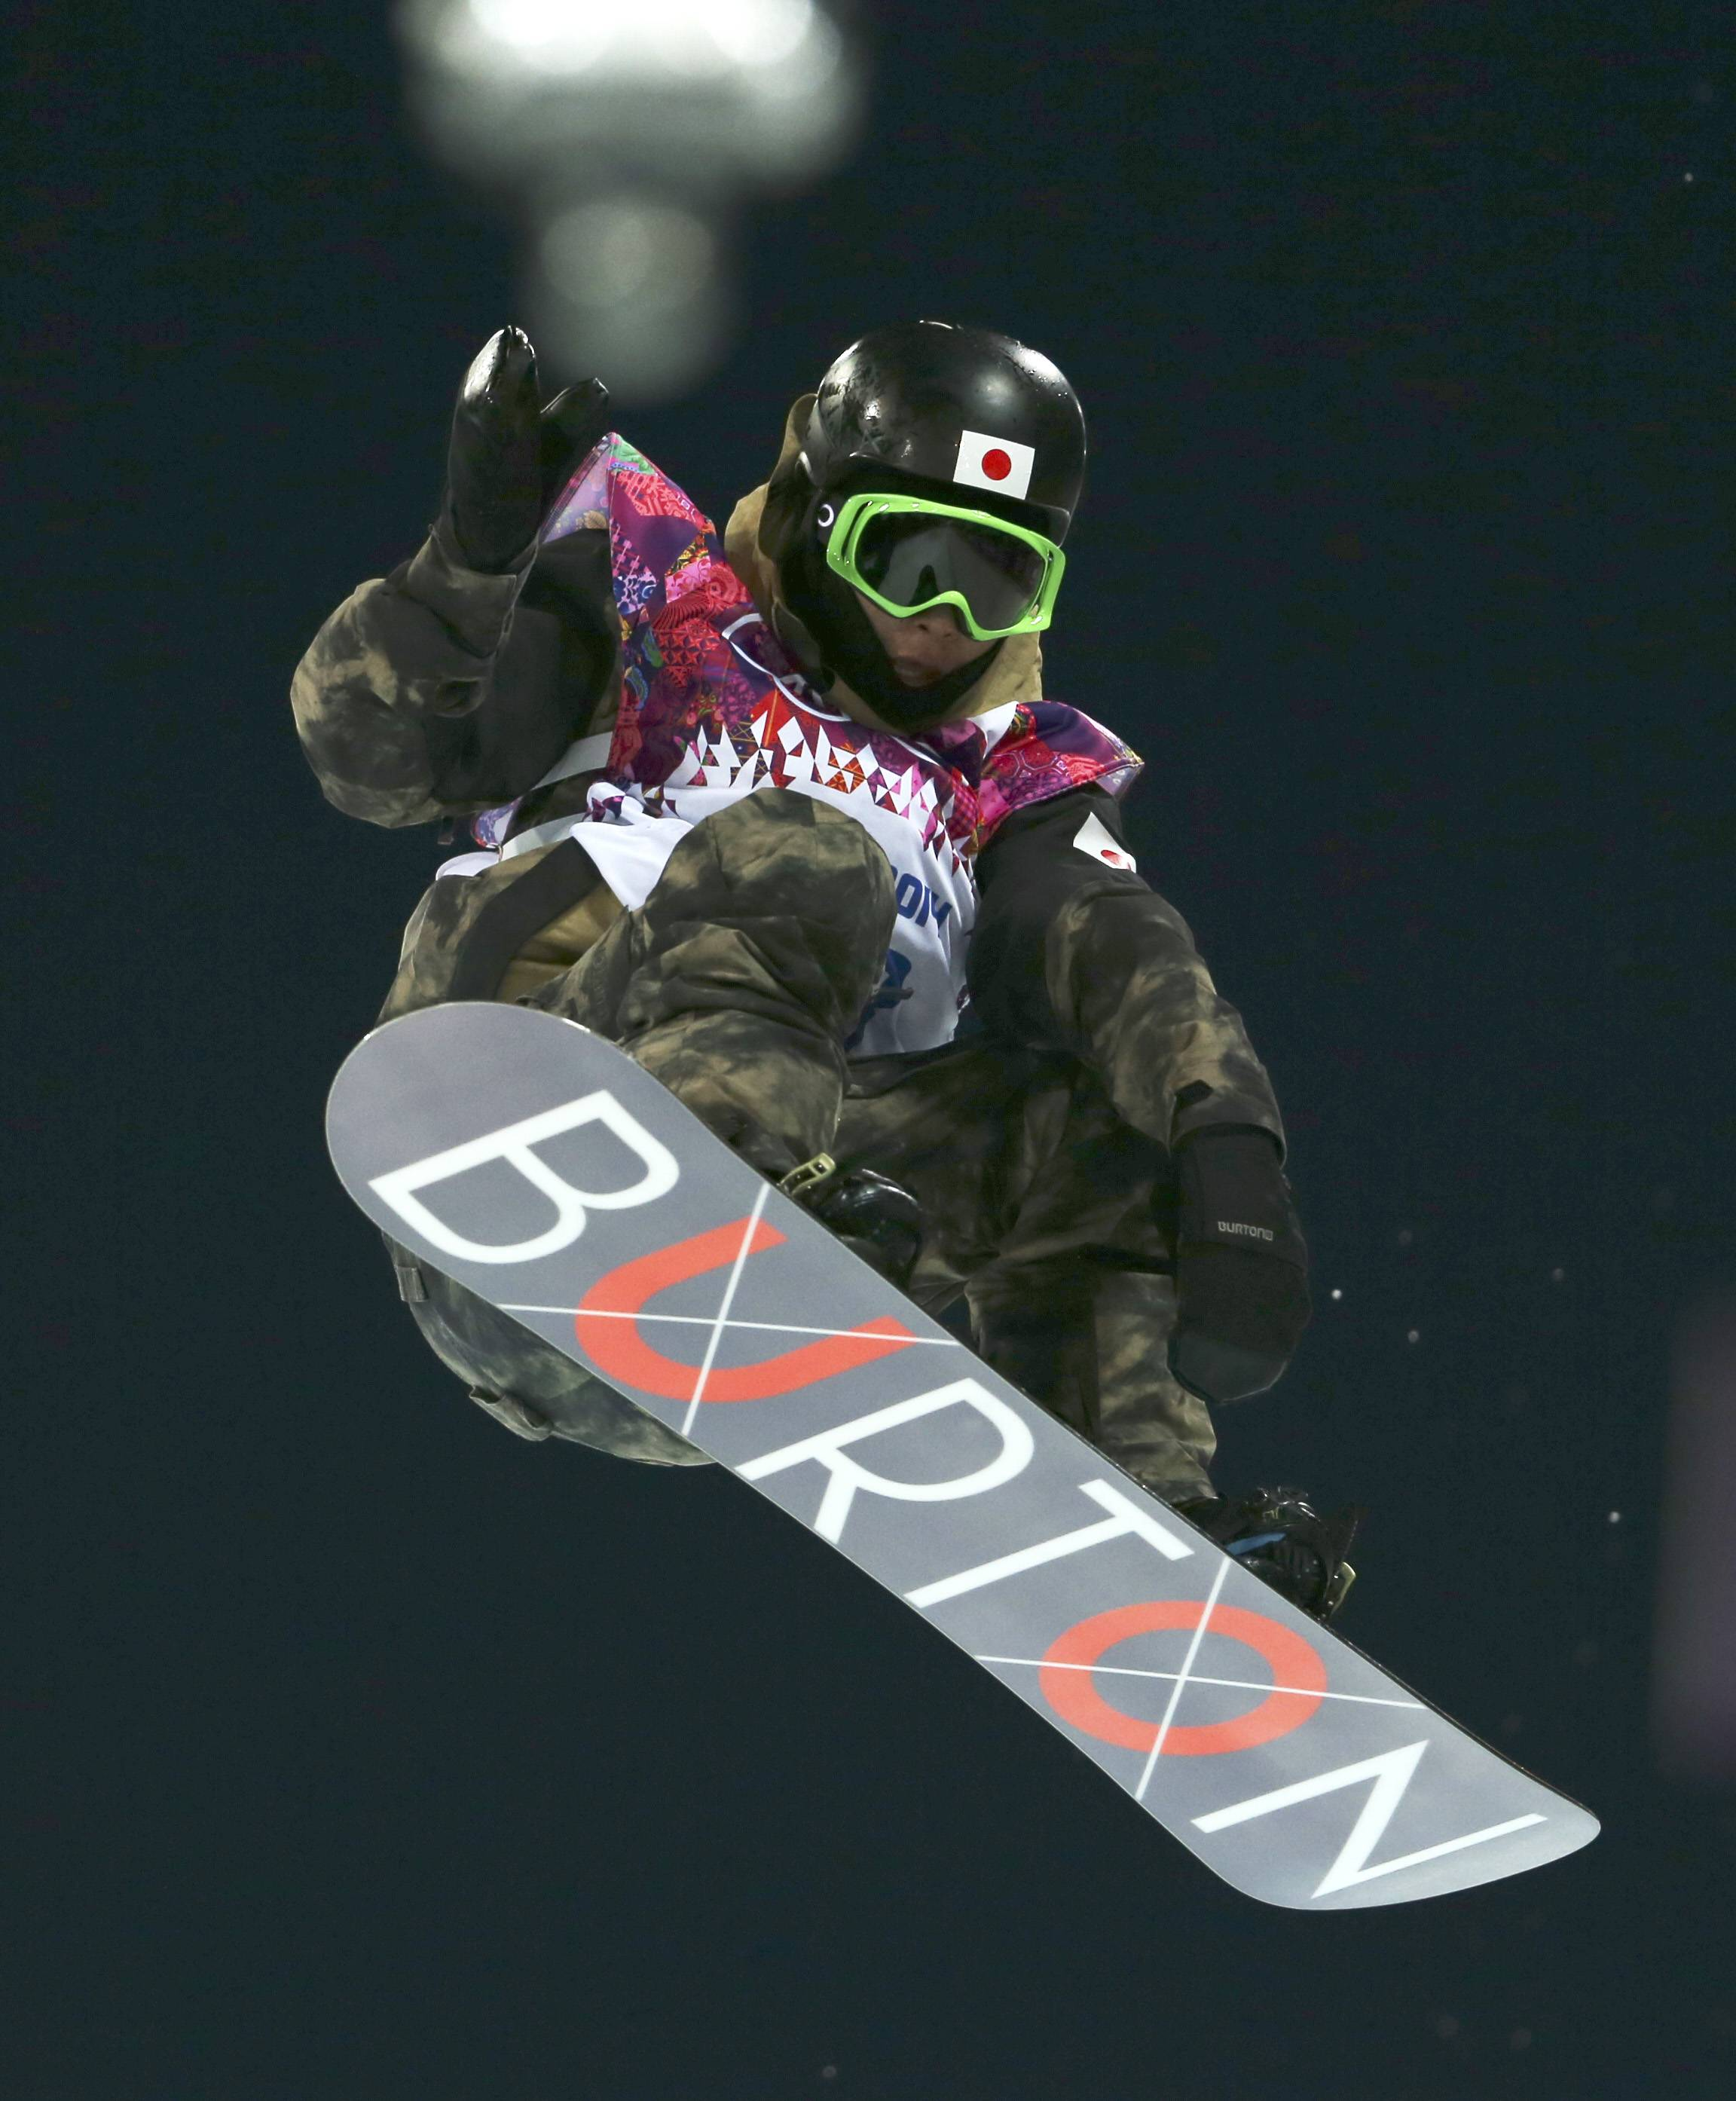 Japan's Taku Hiraoka competes during the men's snowboard halfpipe final.